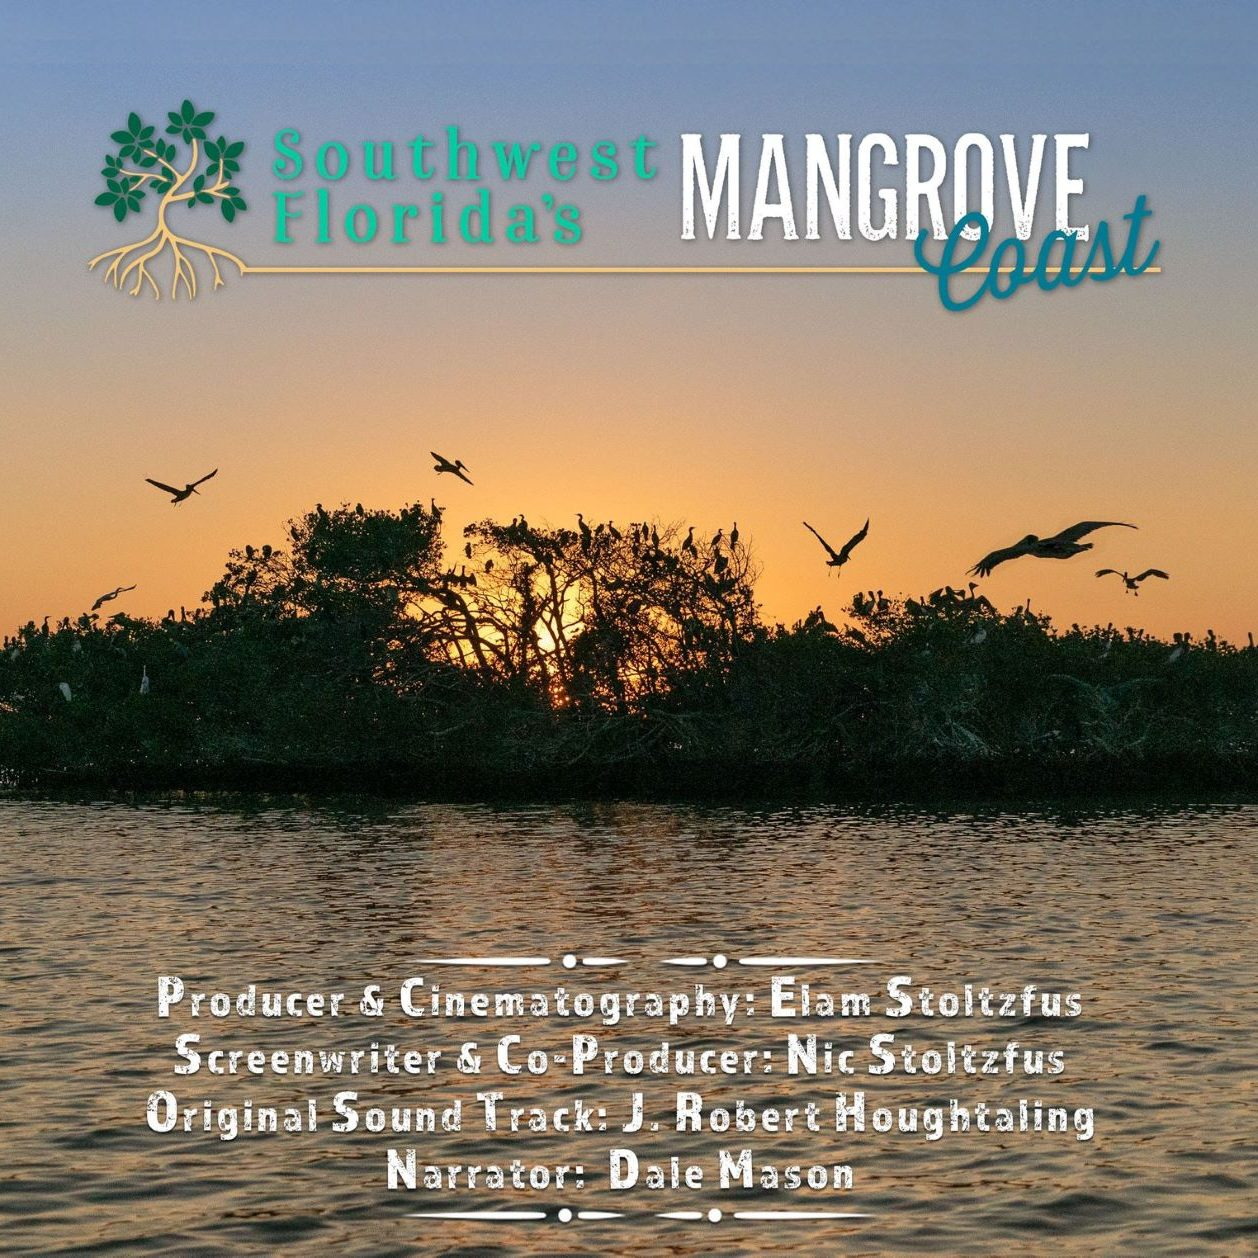 Southwest Florida's Mangrove Coast | Rookery Bay Research Reserve